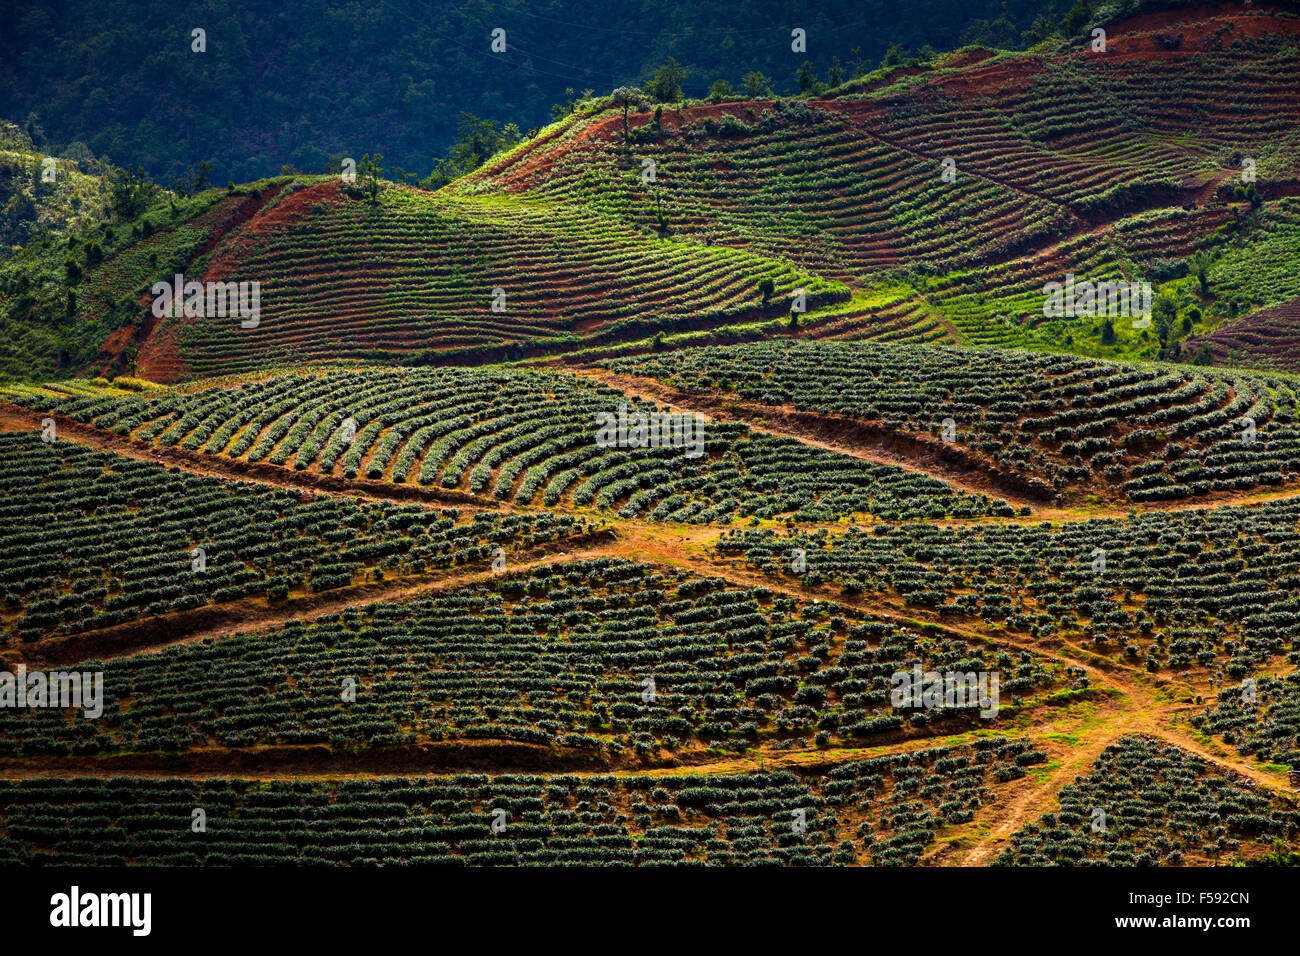 Rose plantations in the mountains near Sapa village, Northern Vietnam. - Stock Image